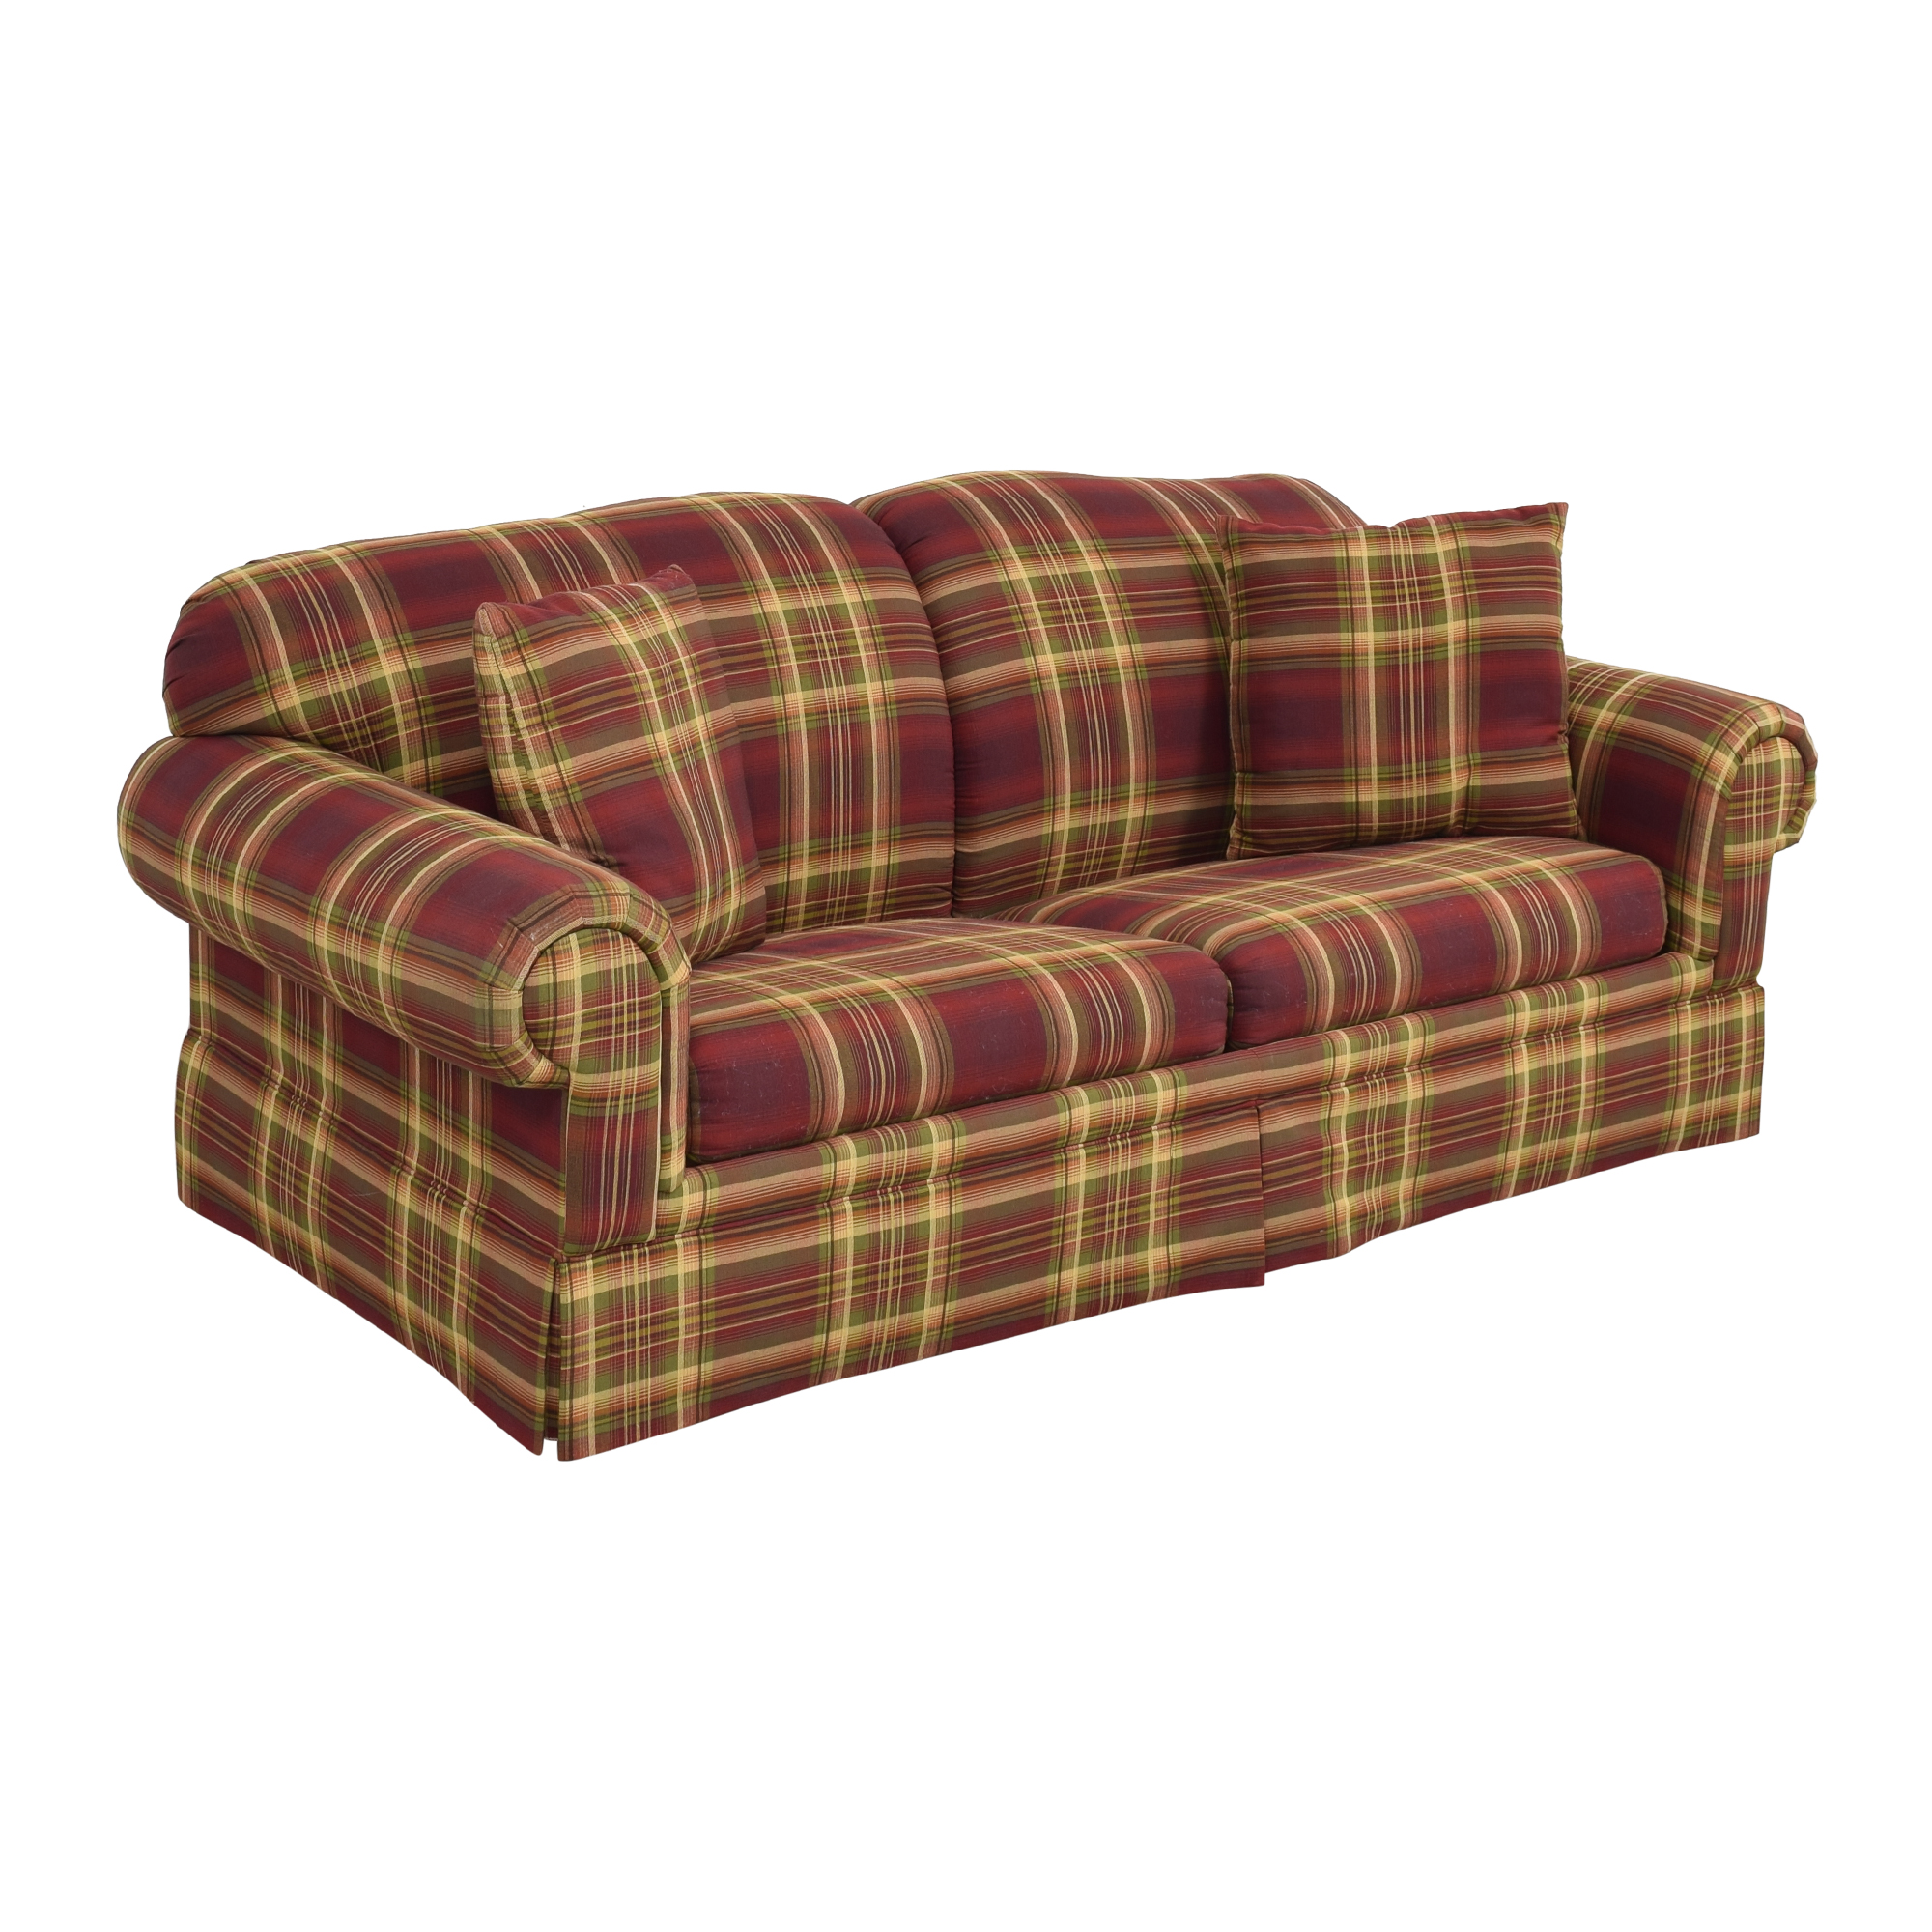 Rowe Two Seater Queen Sleeper Sofa Rowe Furniture